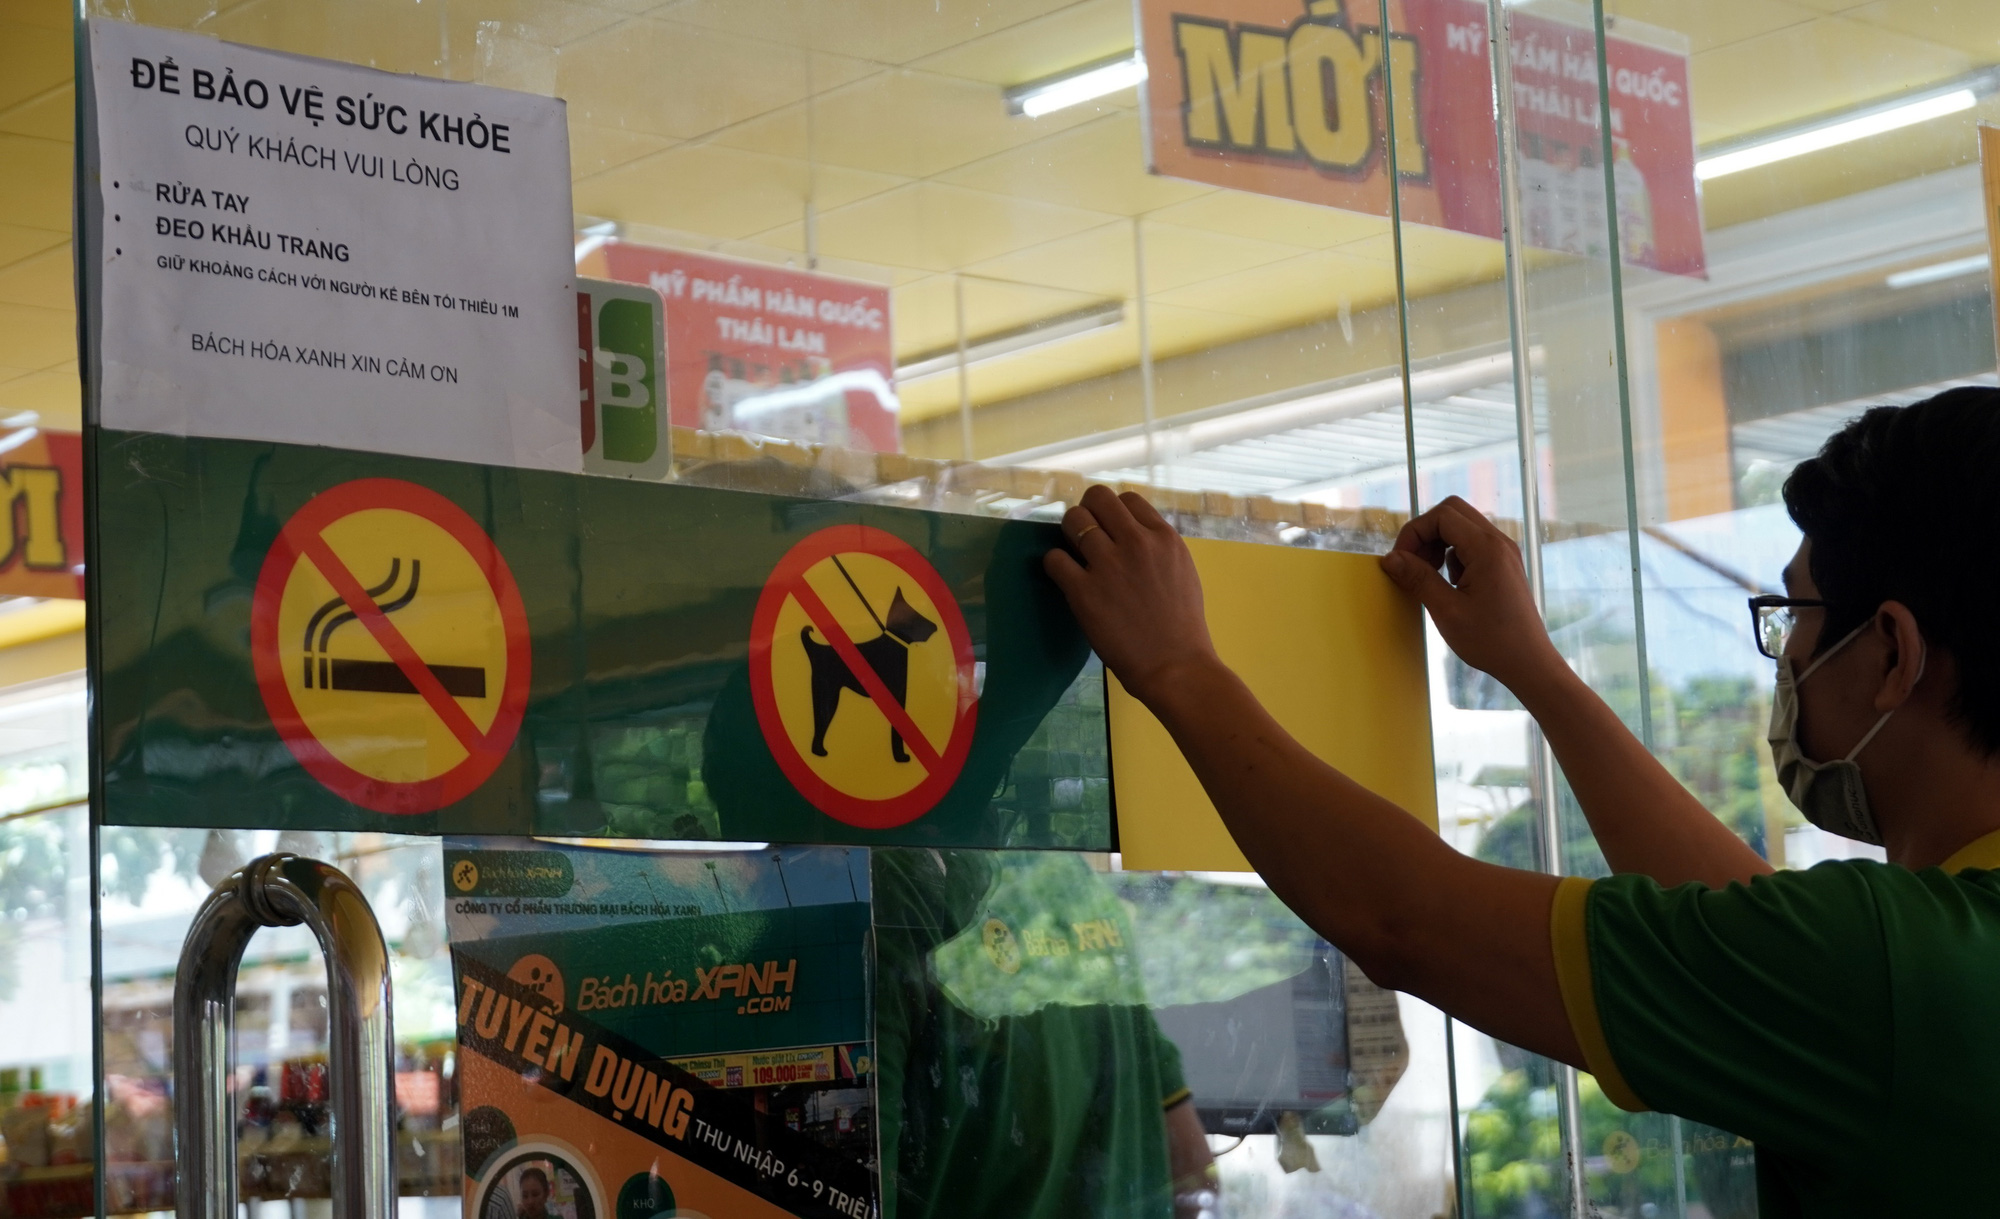 A worker covers a 'no photography' sign on the door of a Bach Hoa Xanh store in Ba Ria - Vung Tau Province, Vietnam. Photo: D.H. / Tuoi Tre